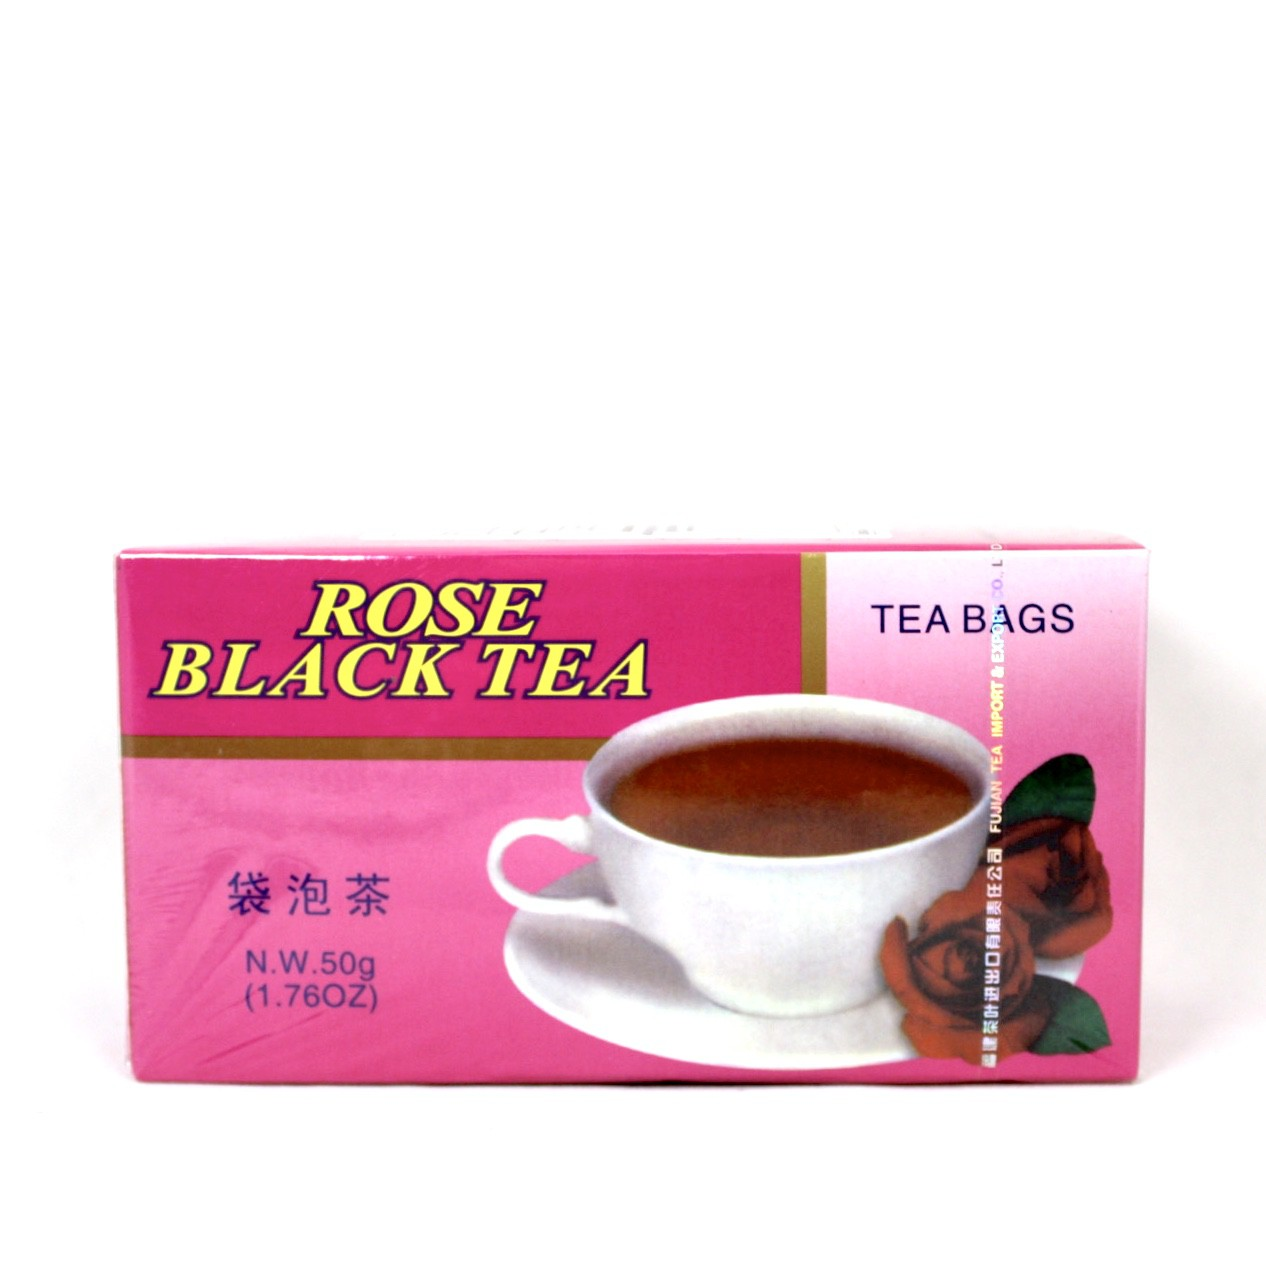 FUJIAN BLACK TEA & ROSE 2g X 25 BAGS 50G BT903